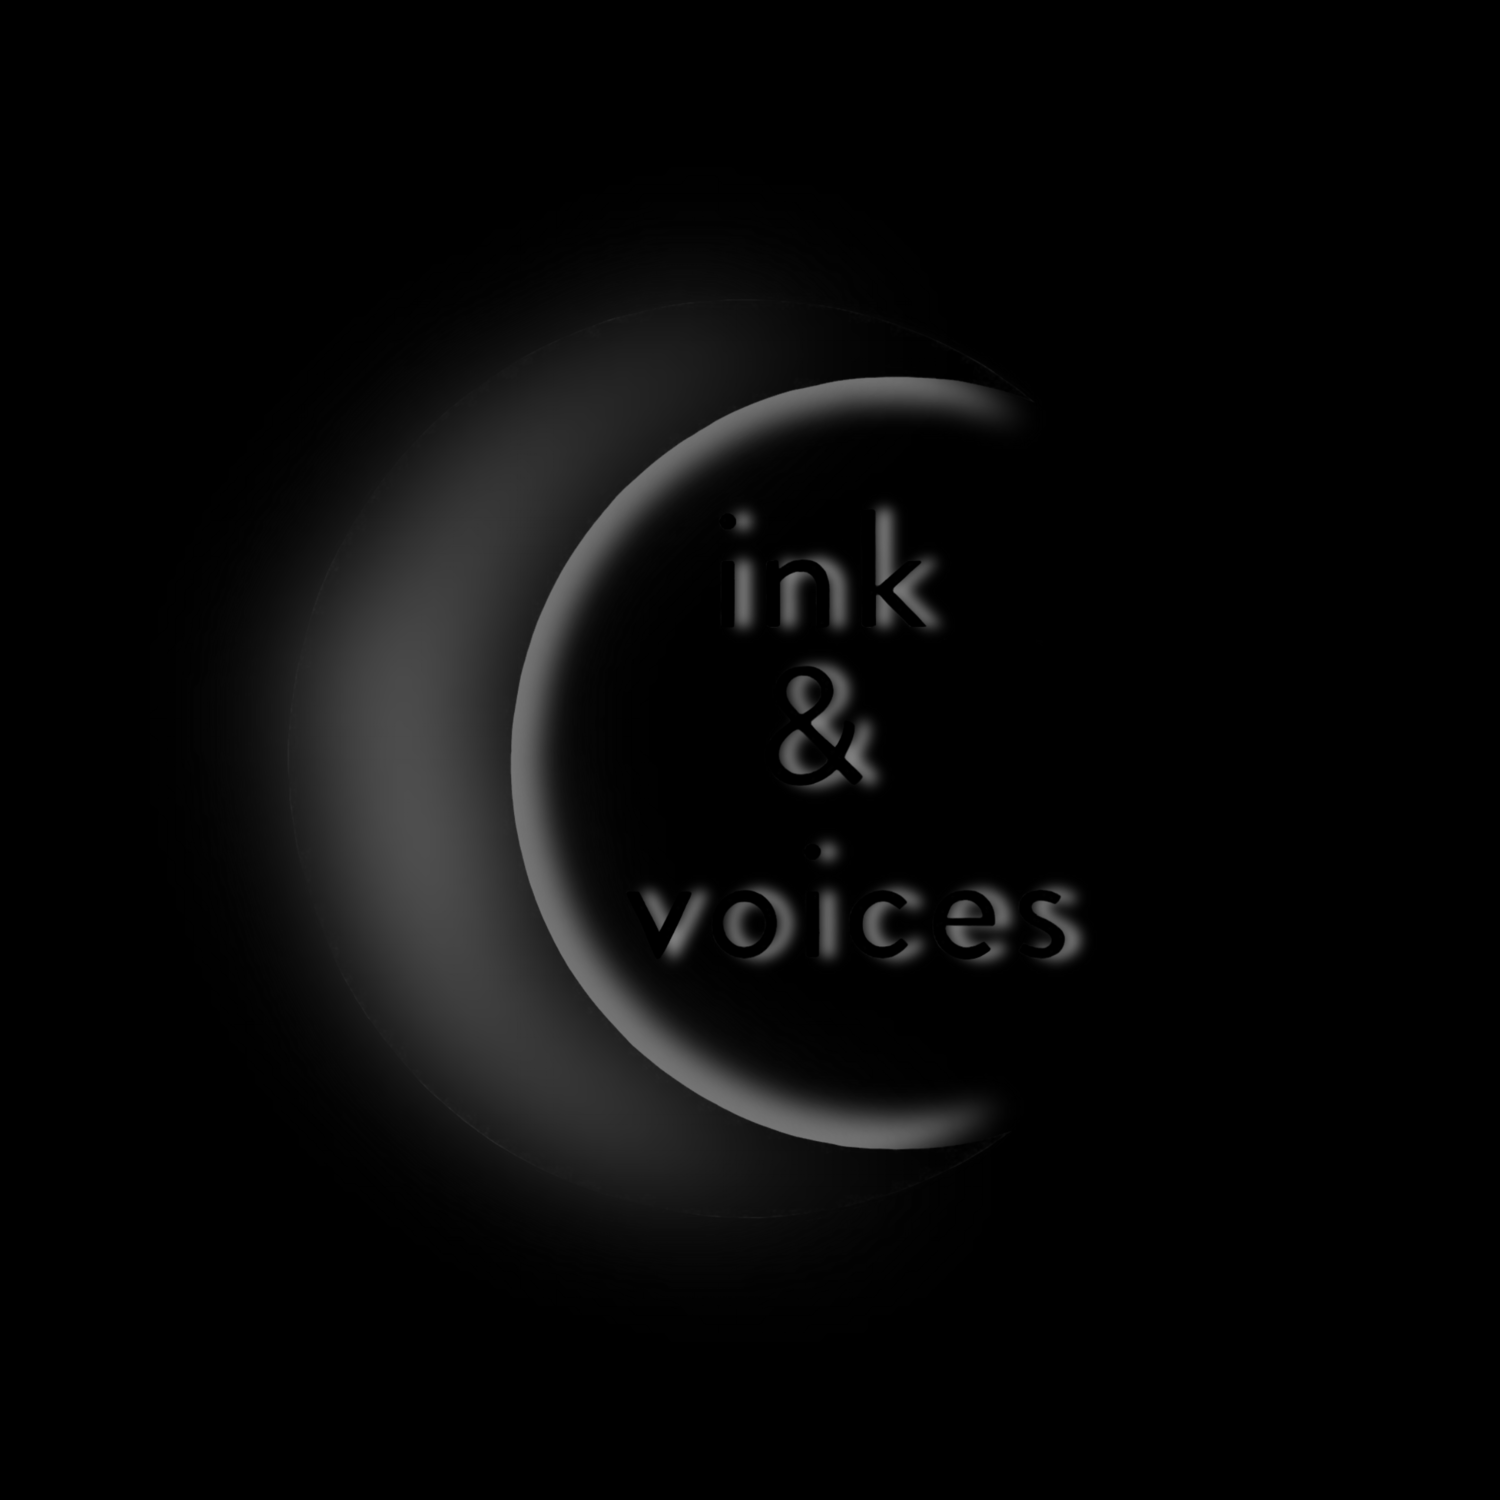 Ink & Voices